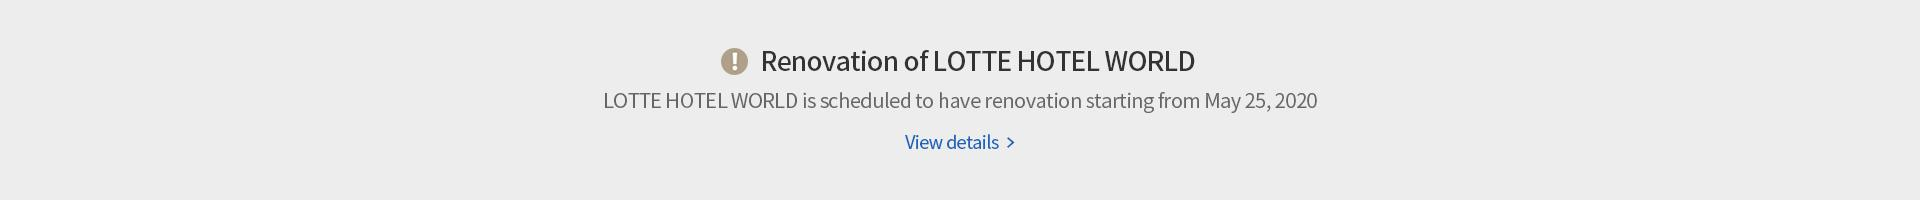 LOTTE HOTEL WORLD, Notice